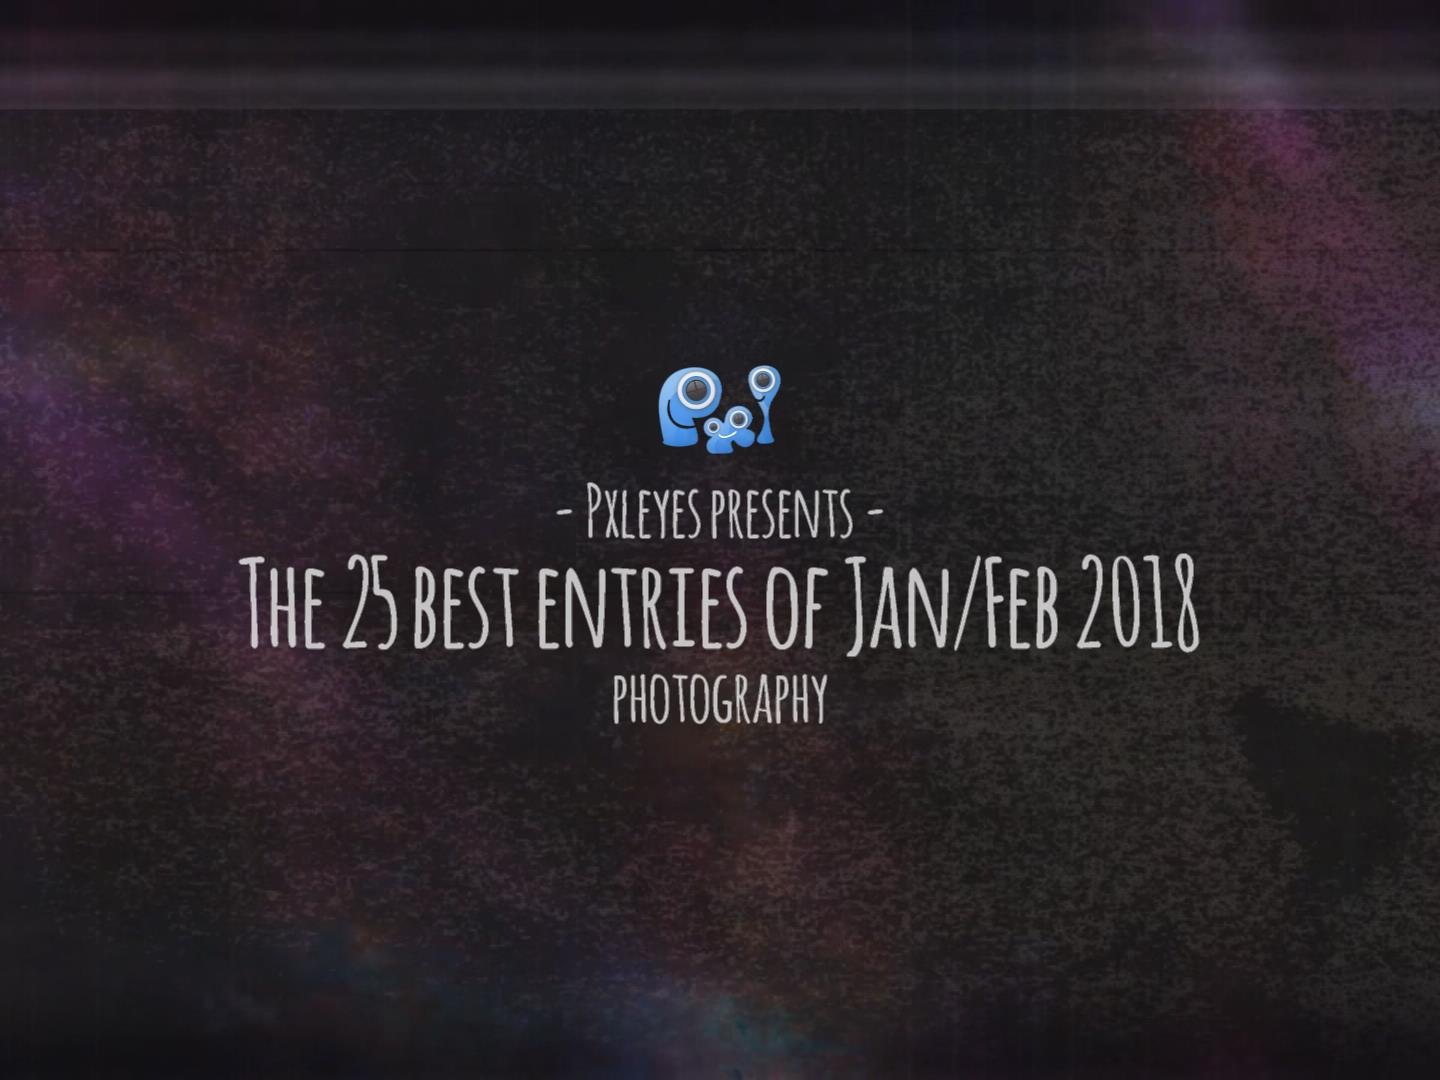 The best photography entries in January & February 2018